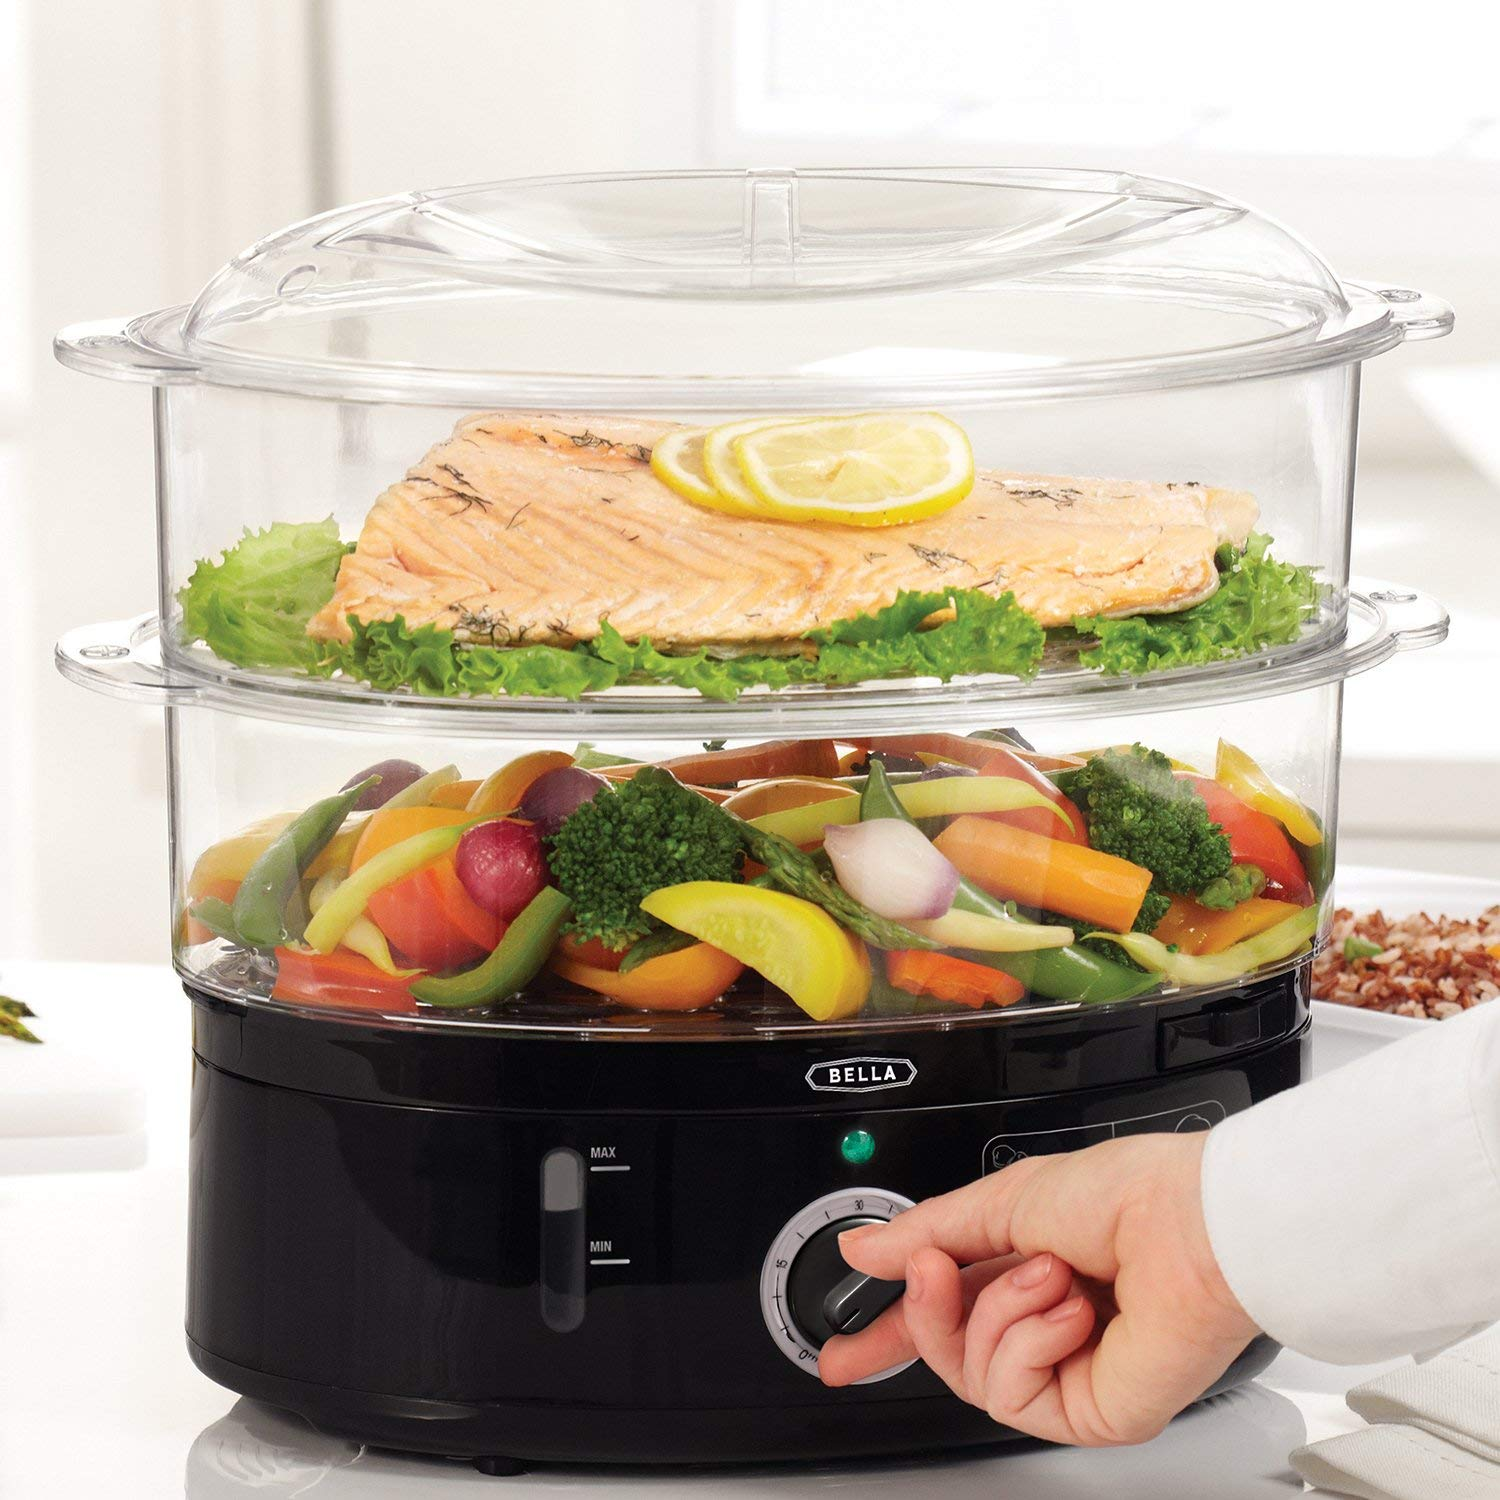 BELLA (13872) 7.4 Quart Healthy Food Steamer with 2-Tier Stackable Baskets